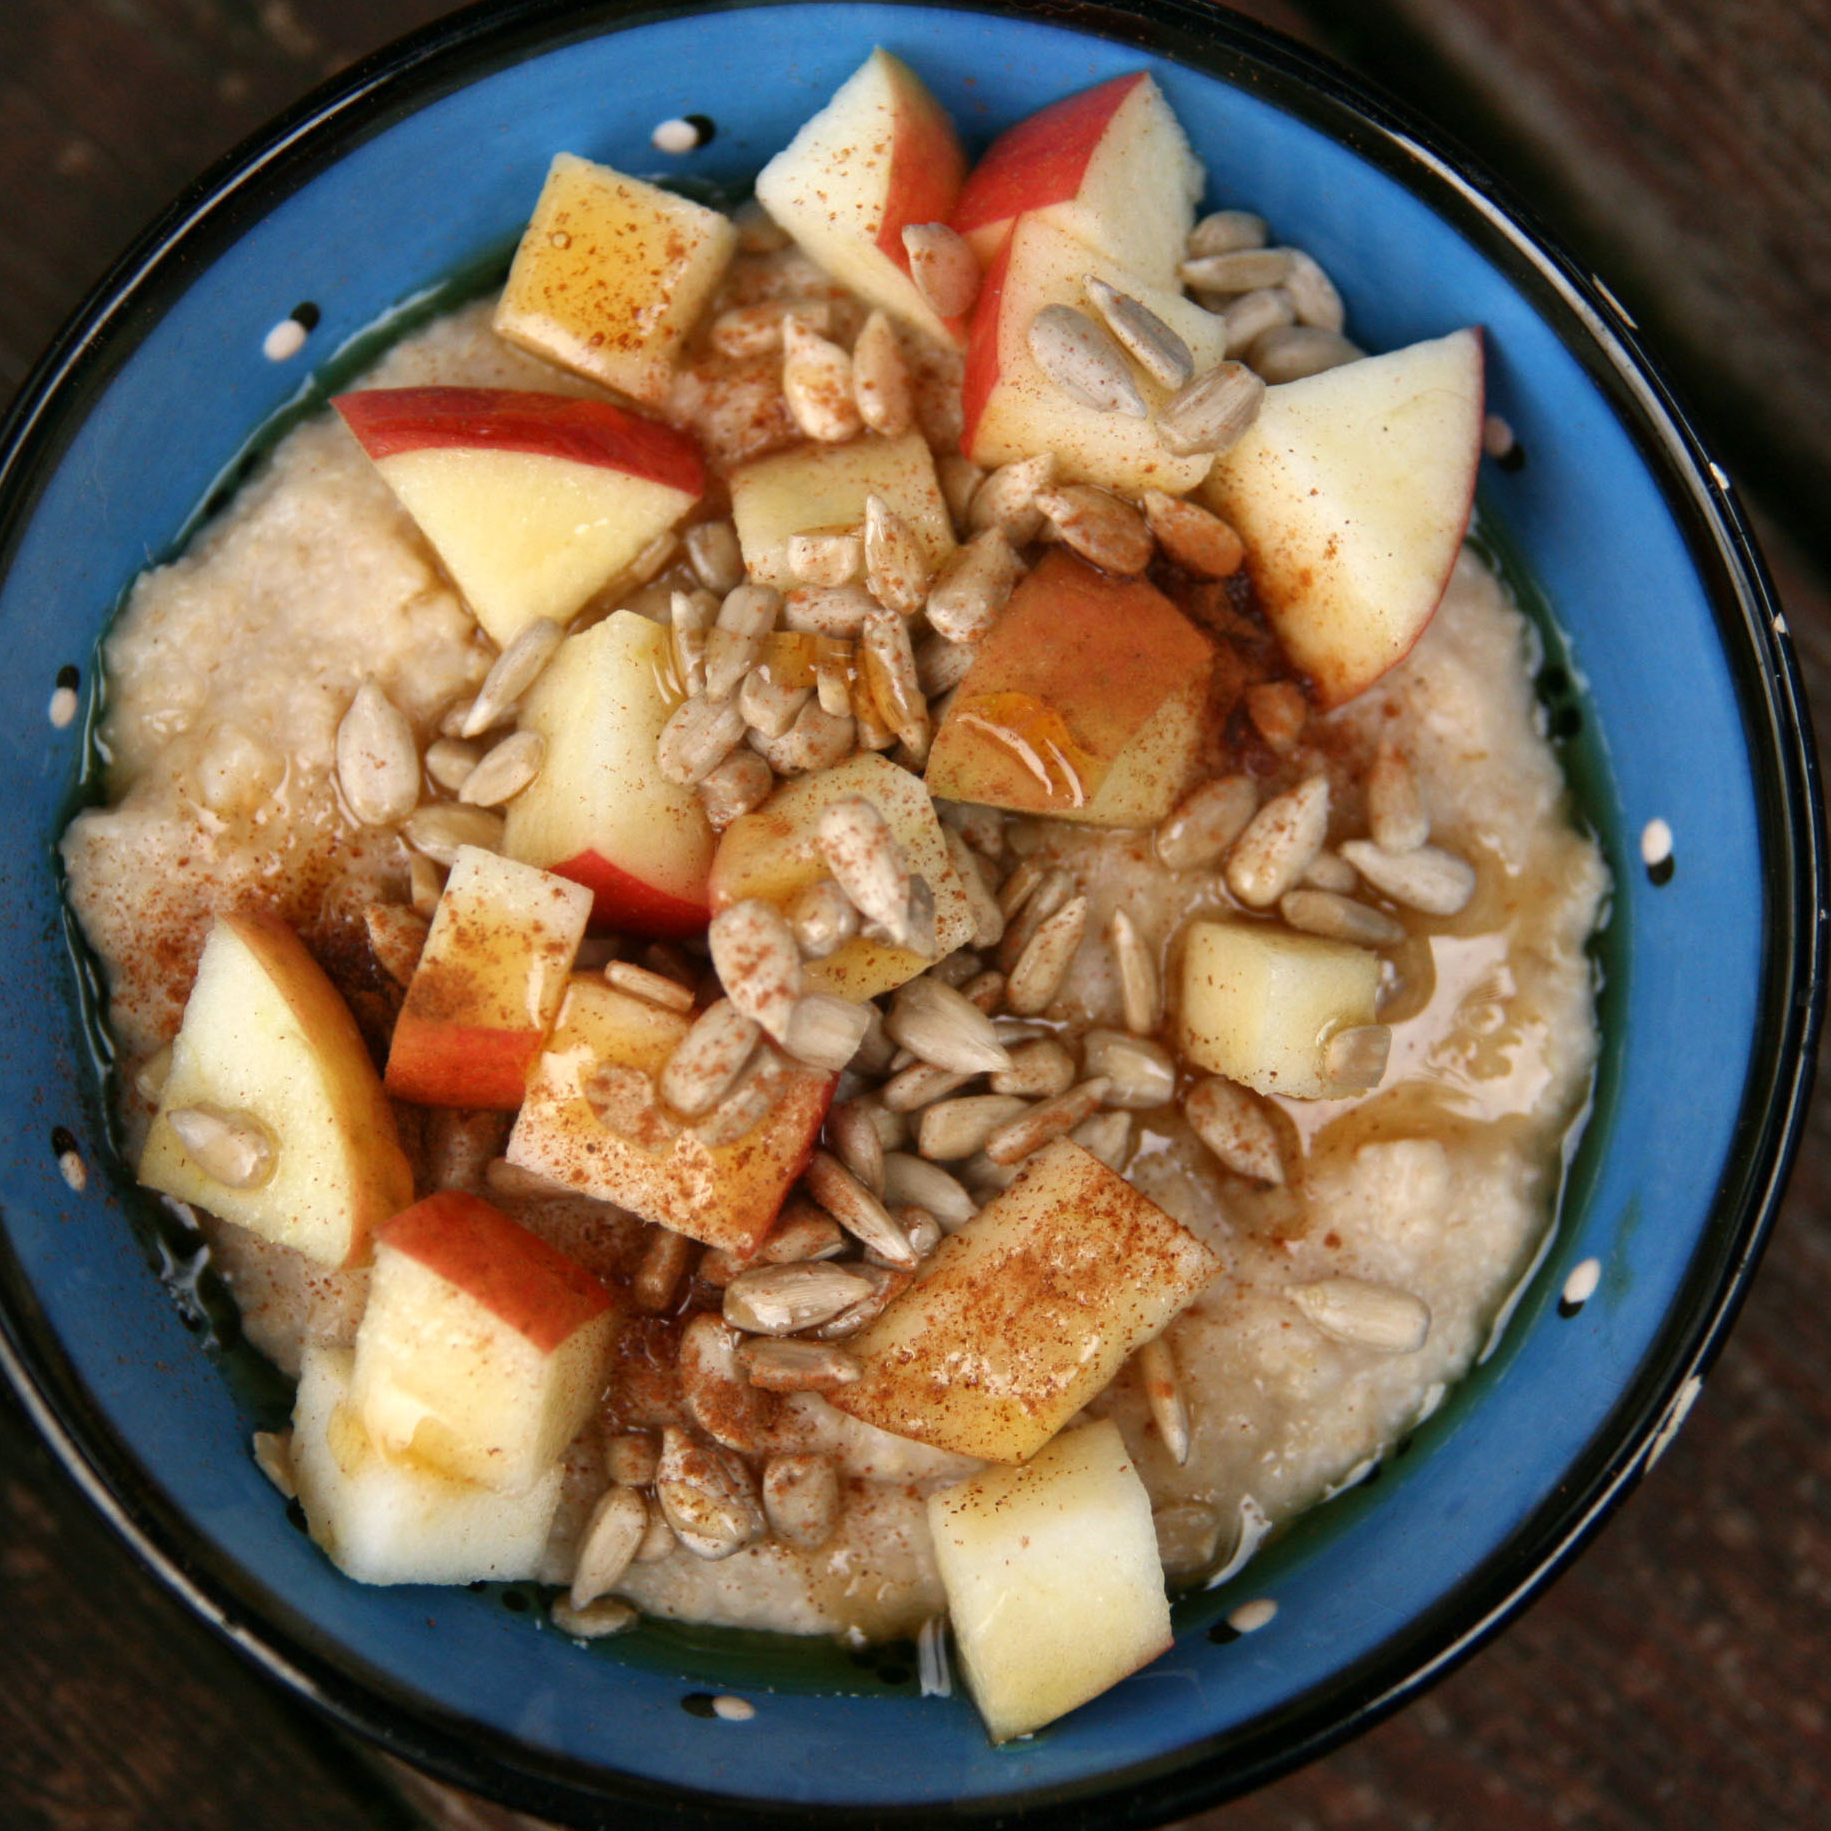 Sunflower Apple Oat Bran Porridge